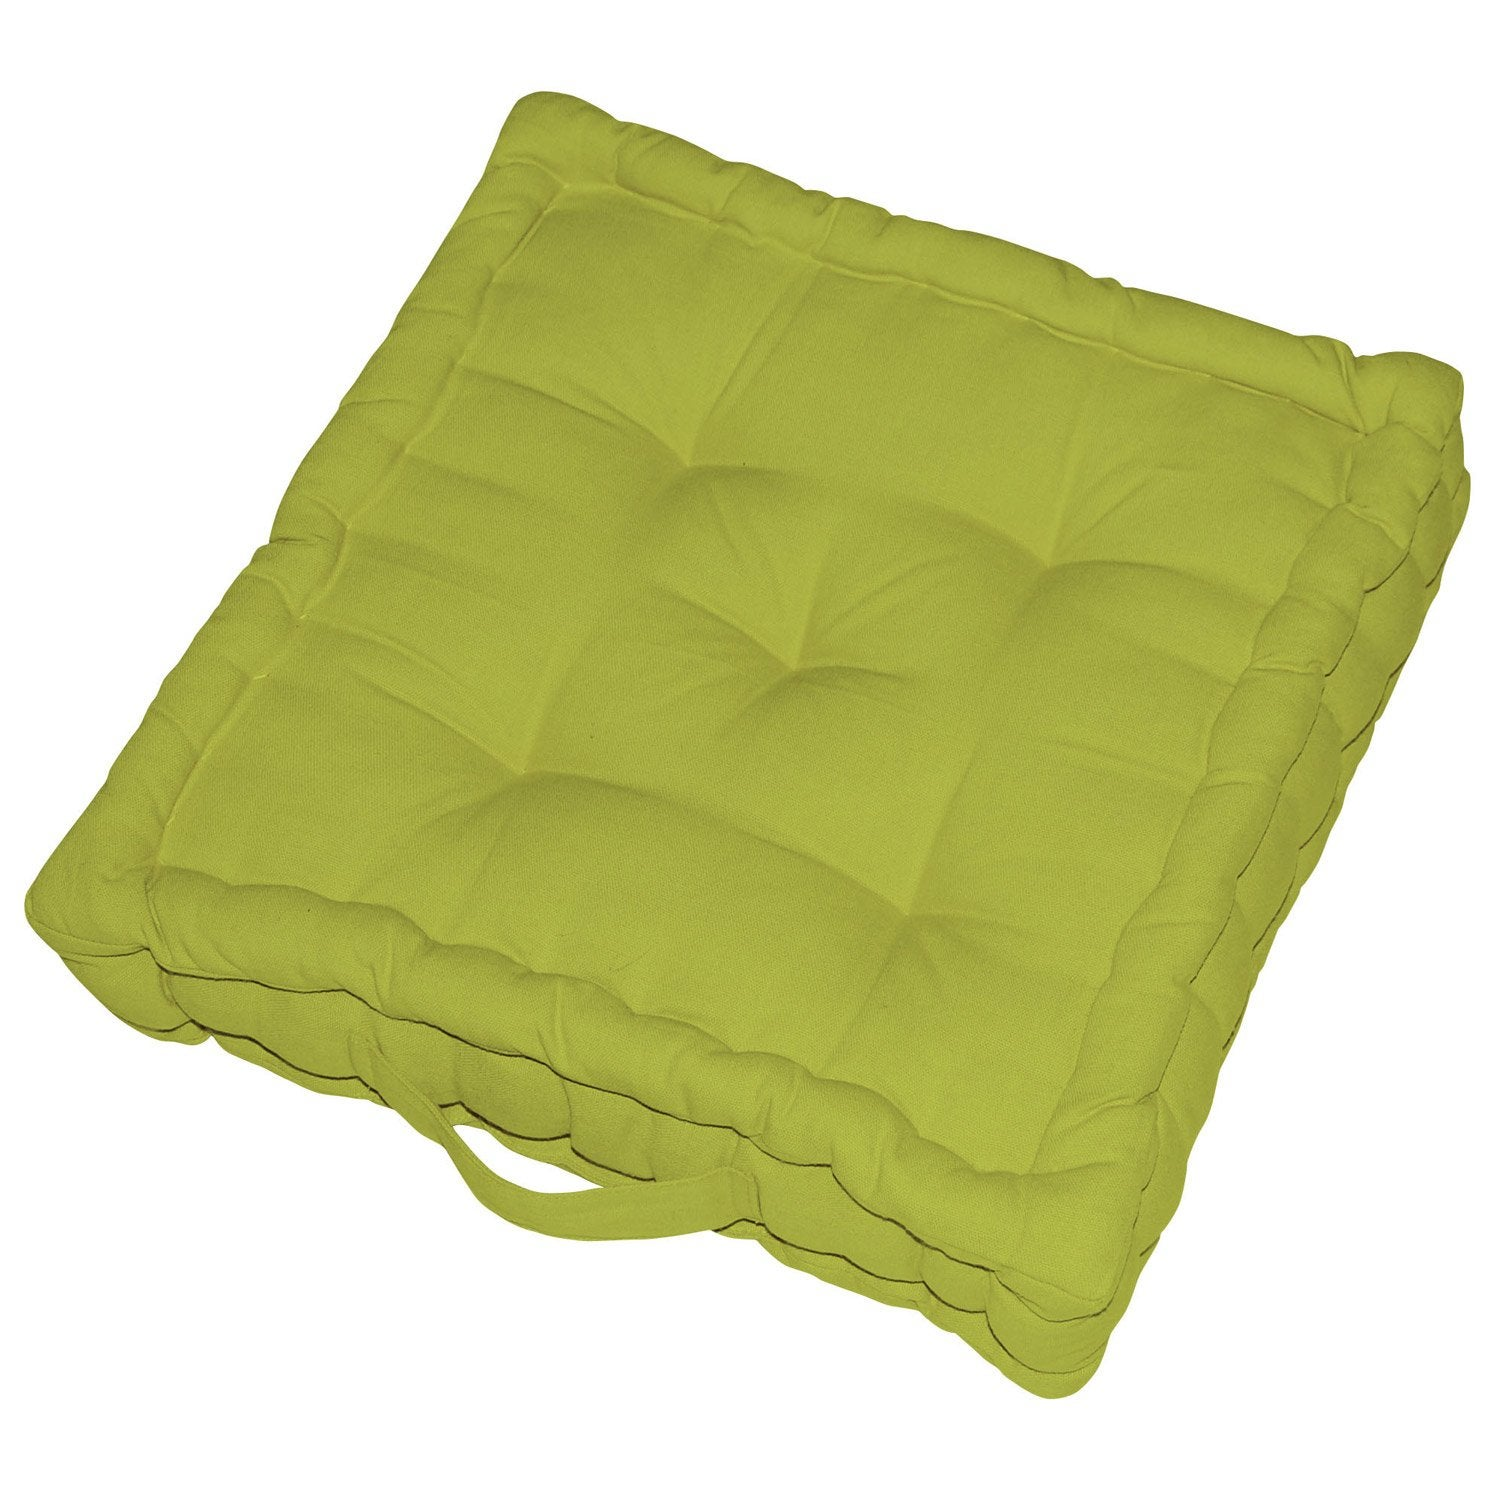 coussin de sol cl a vert pistache n 5 40 x 40 cm leroy merlin. Black Bedroom Furniture Sets. Home Design Ideas